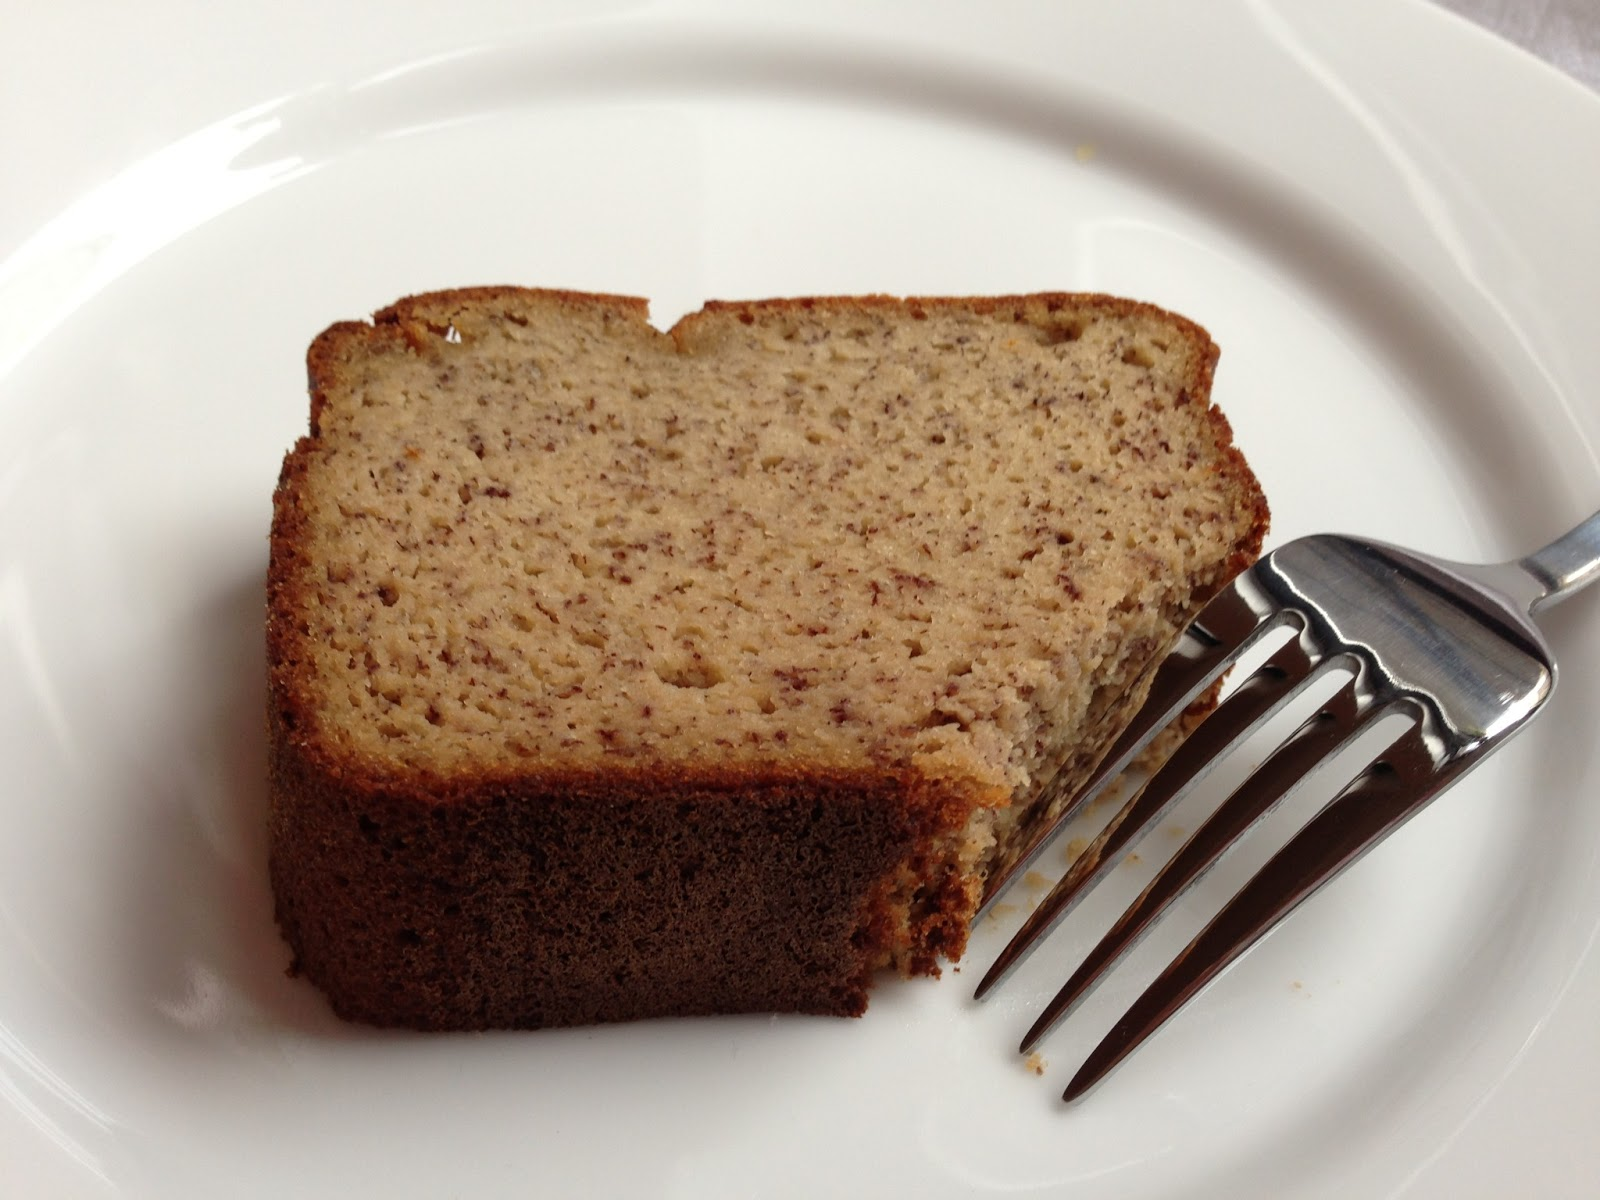 Grain free banana bread kosher for passover forumfinder